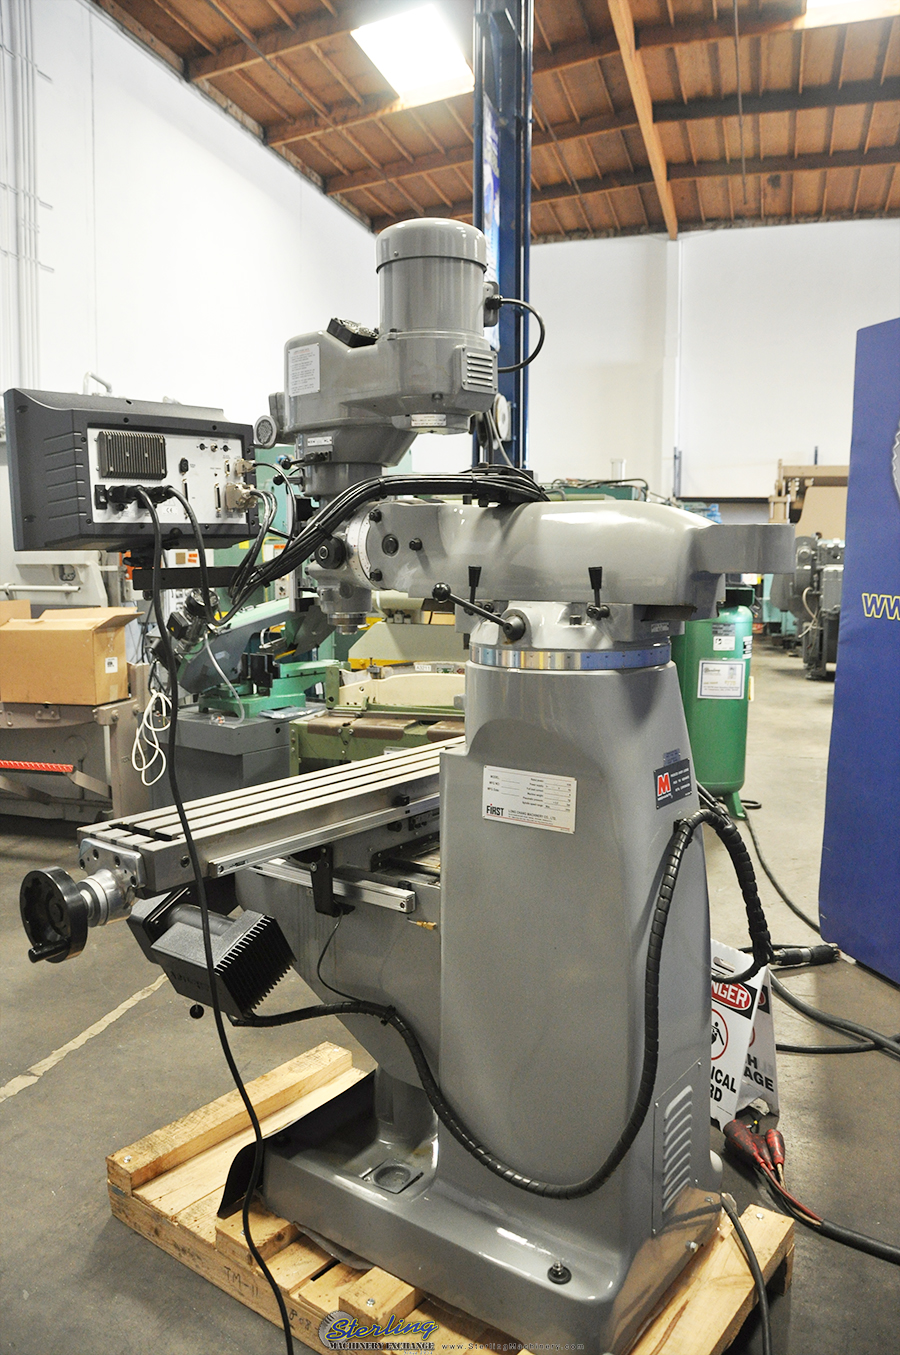 Brand New Acra Millpower Cnc Vertical Mill Sterling Machinery